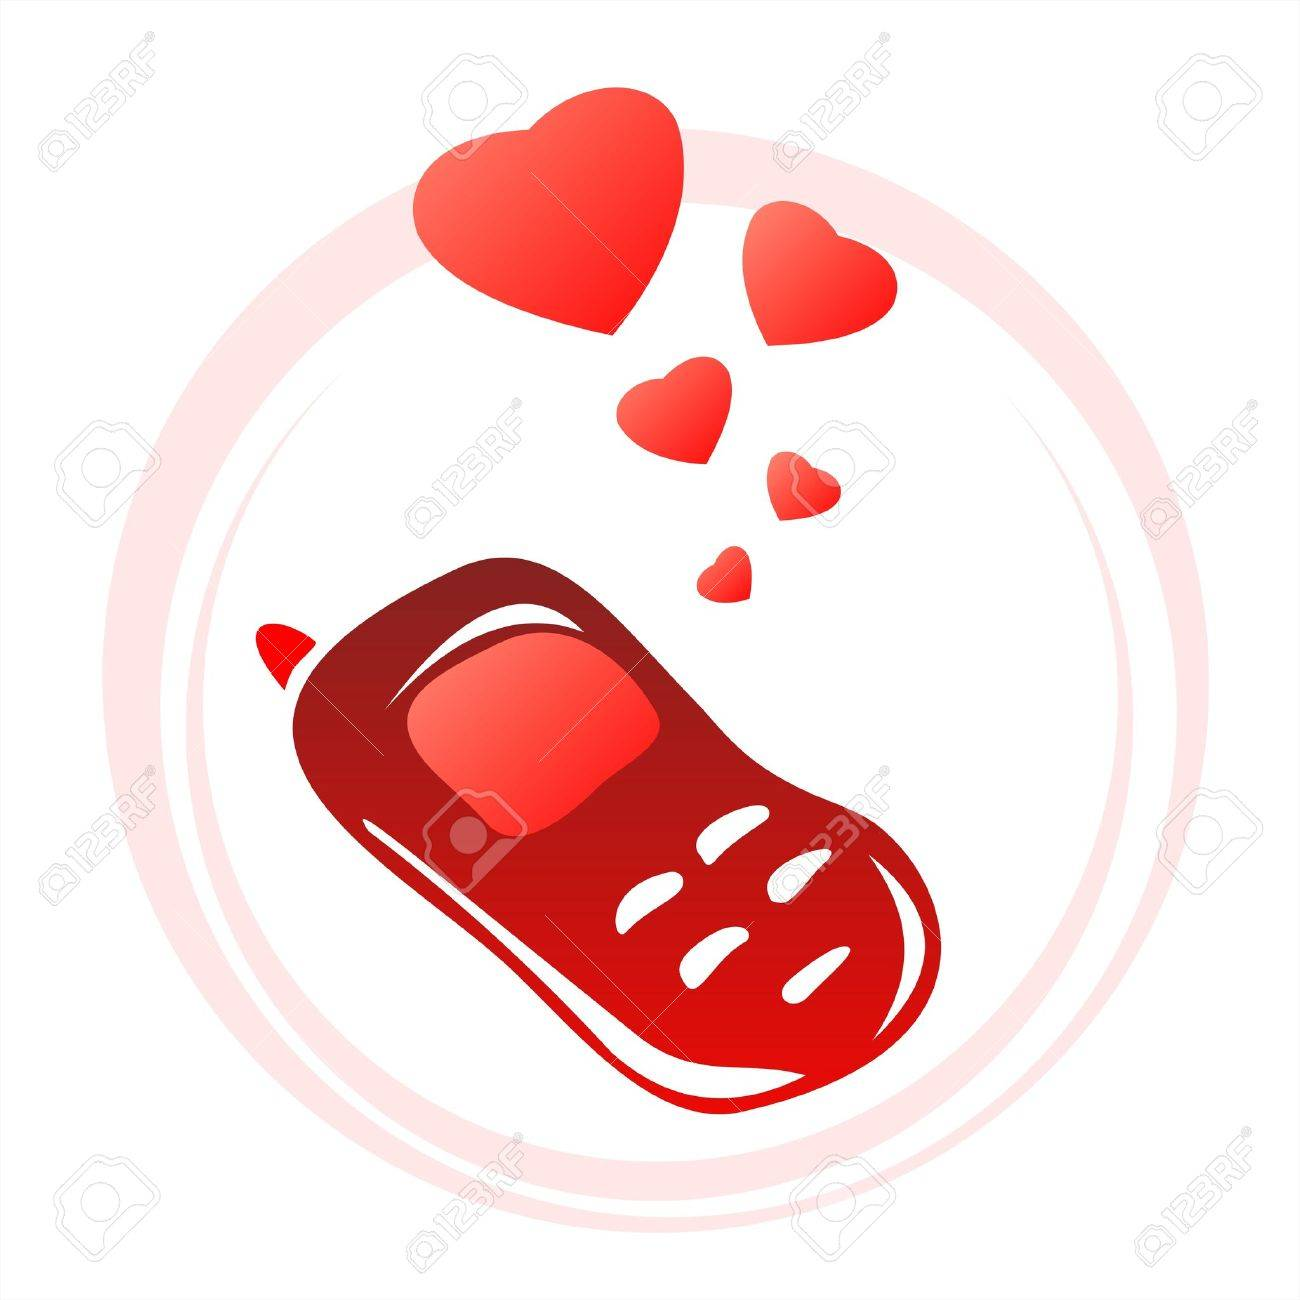 Red stylized phone and hearts on a white background. Valentine's illustration. Stock Vector - 2404030